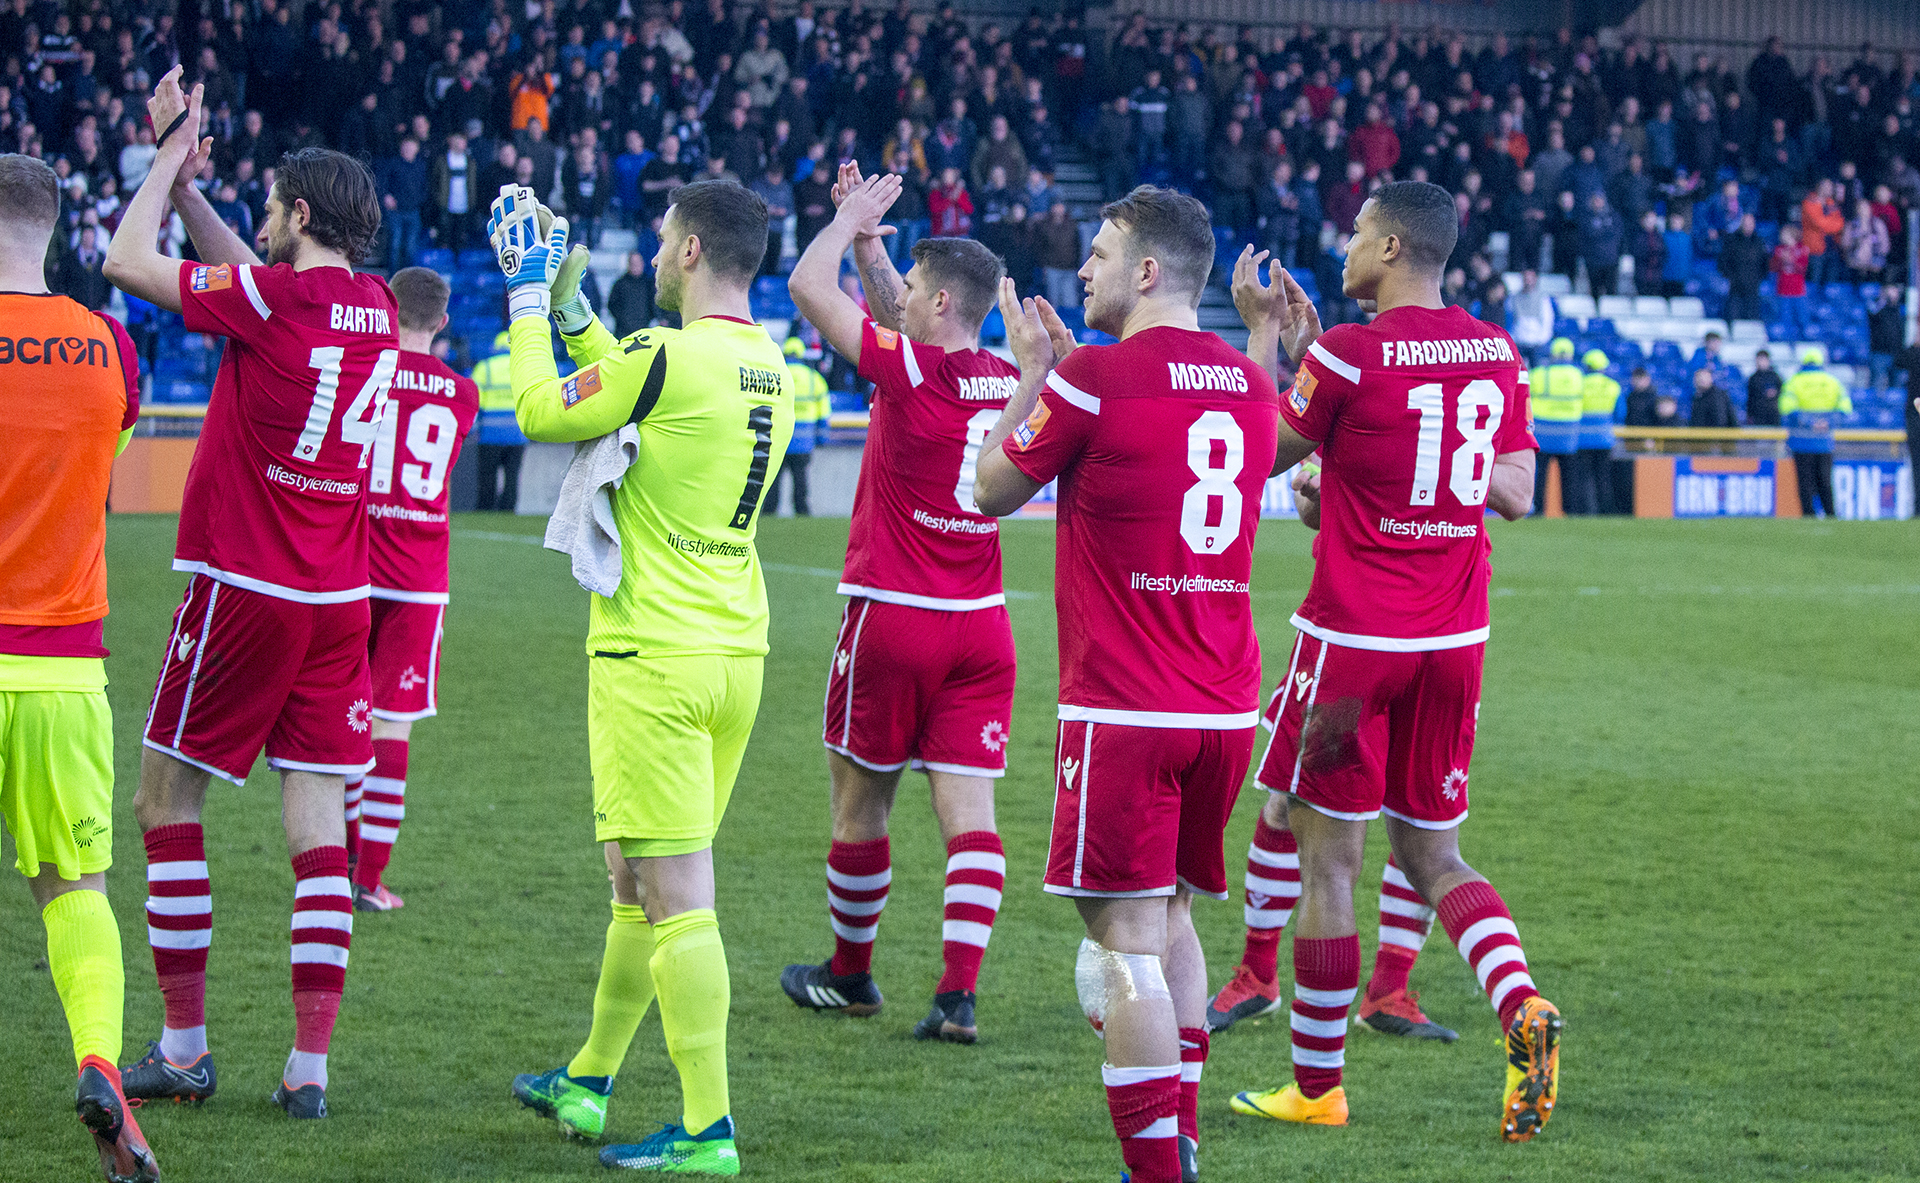 Staggies end Nomads' Irn Bru Cup dream